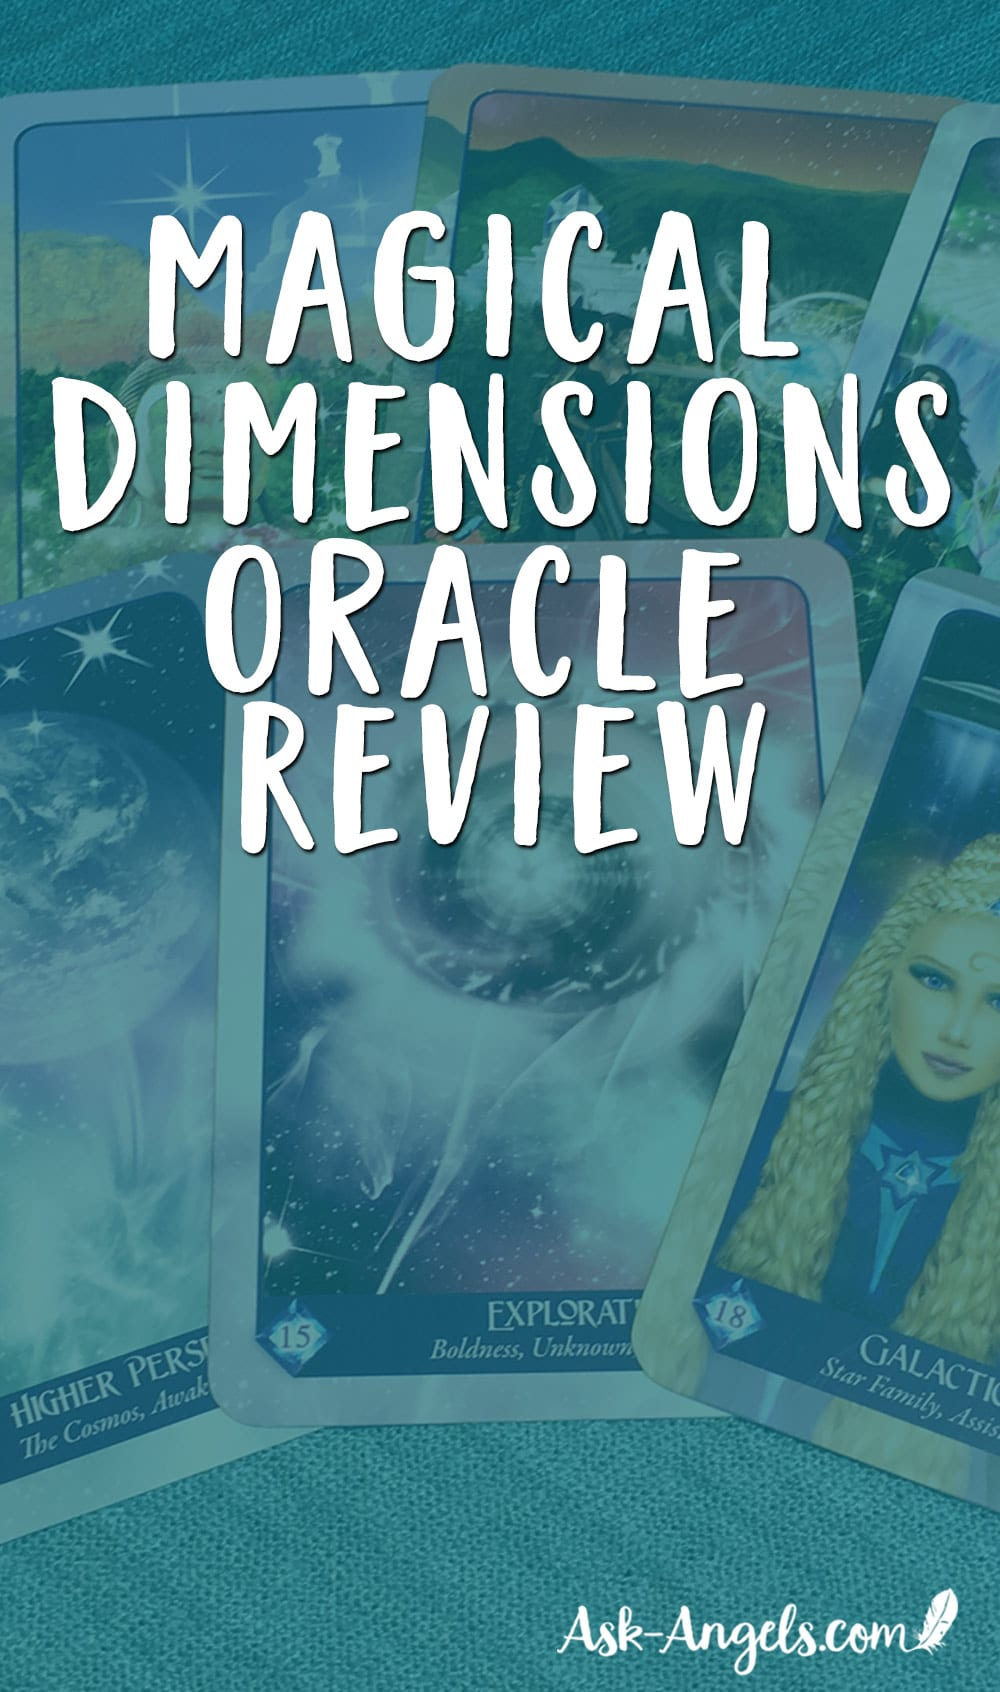 Magical Dimensions Oracle Review